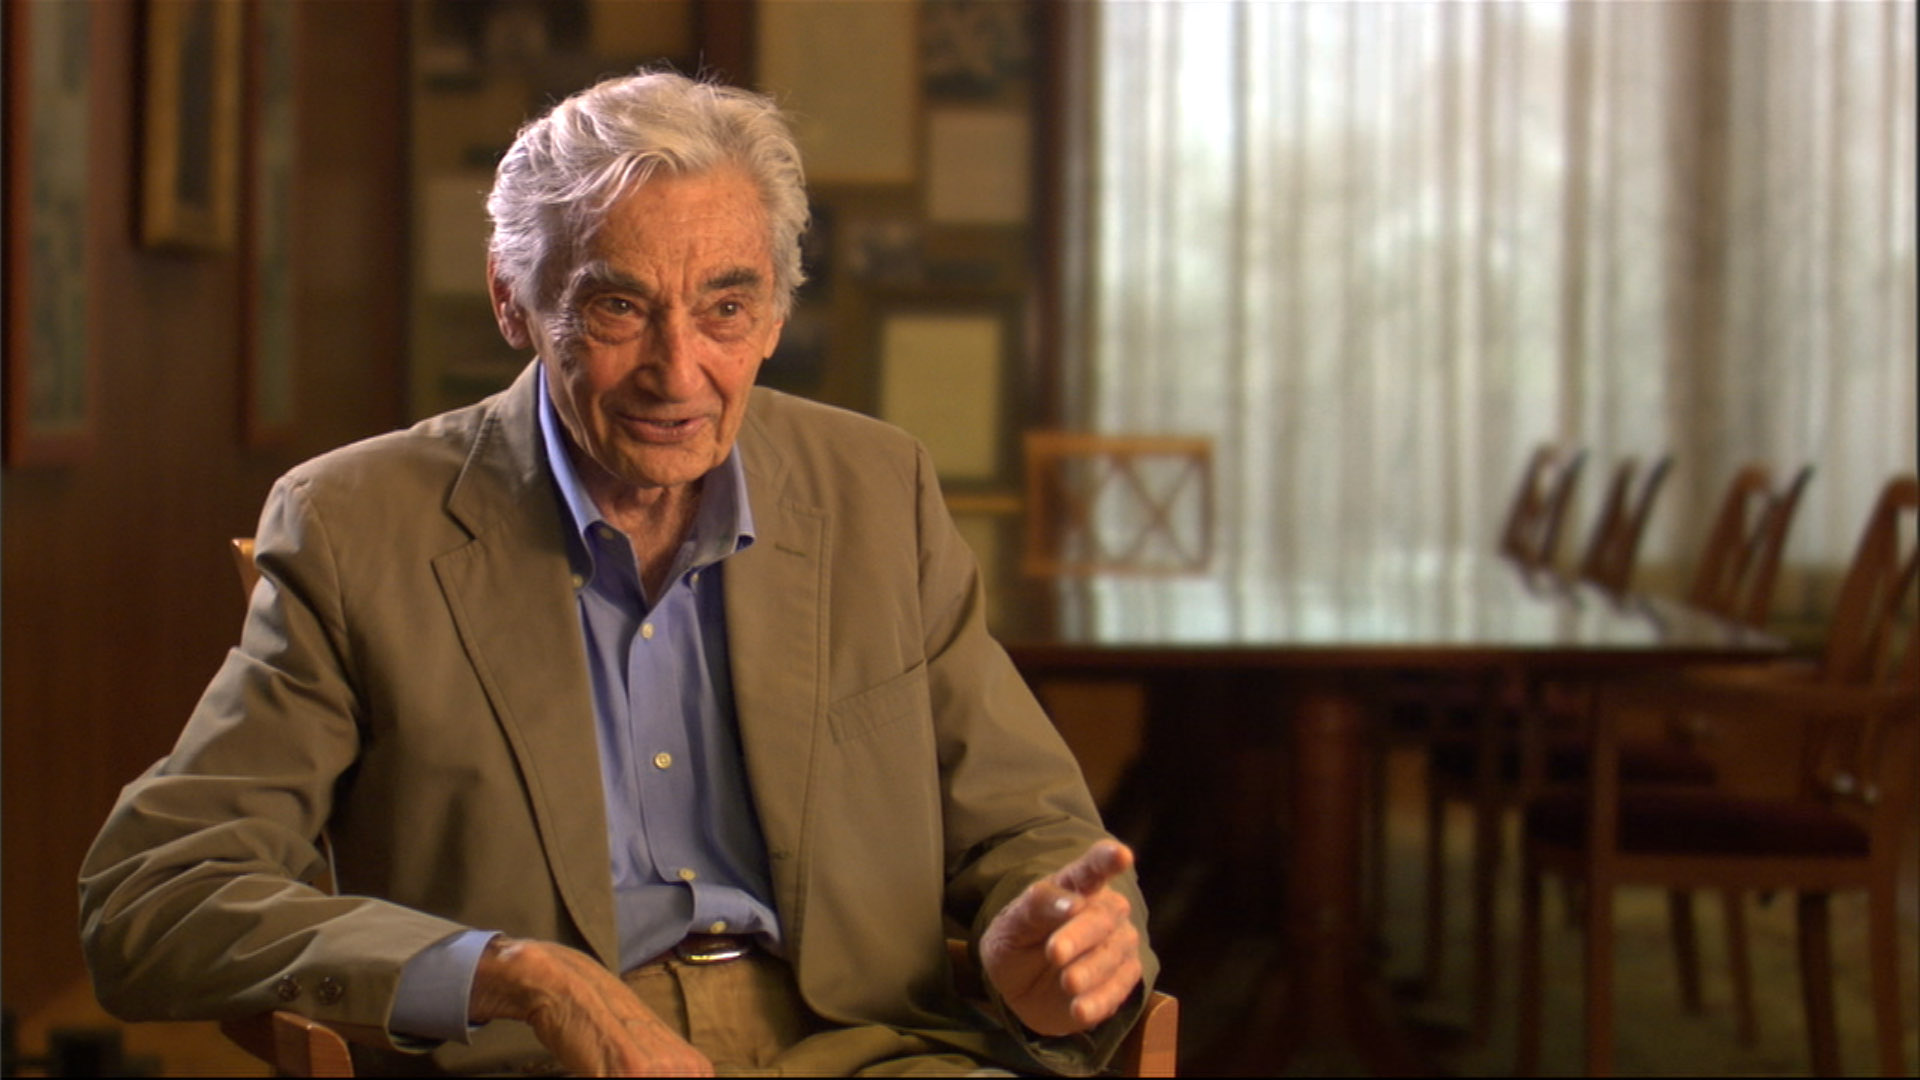 alice walker biography and awards american masters pbs howard zinn on alice walker